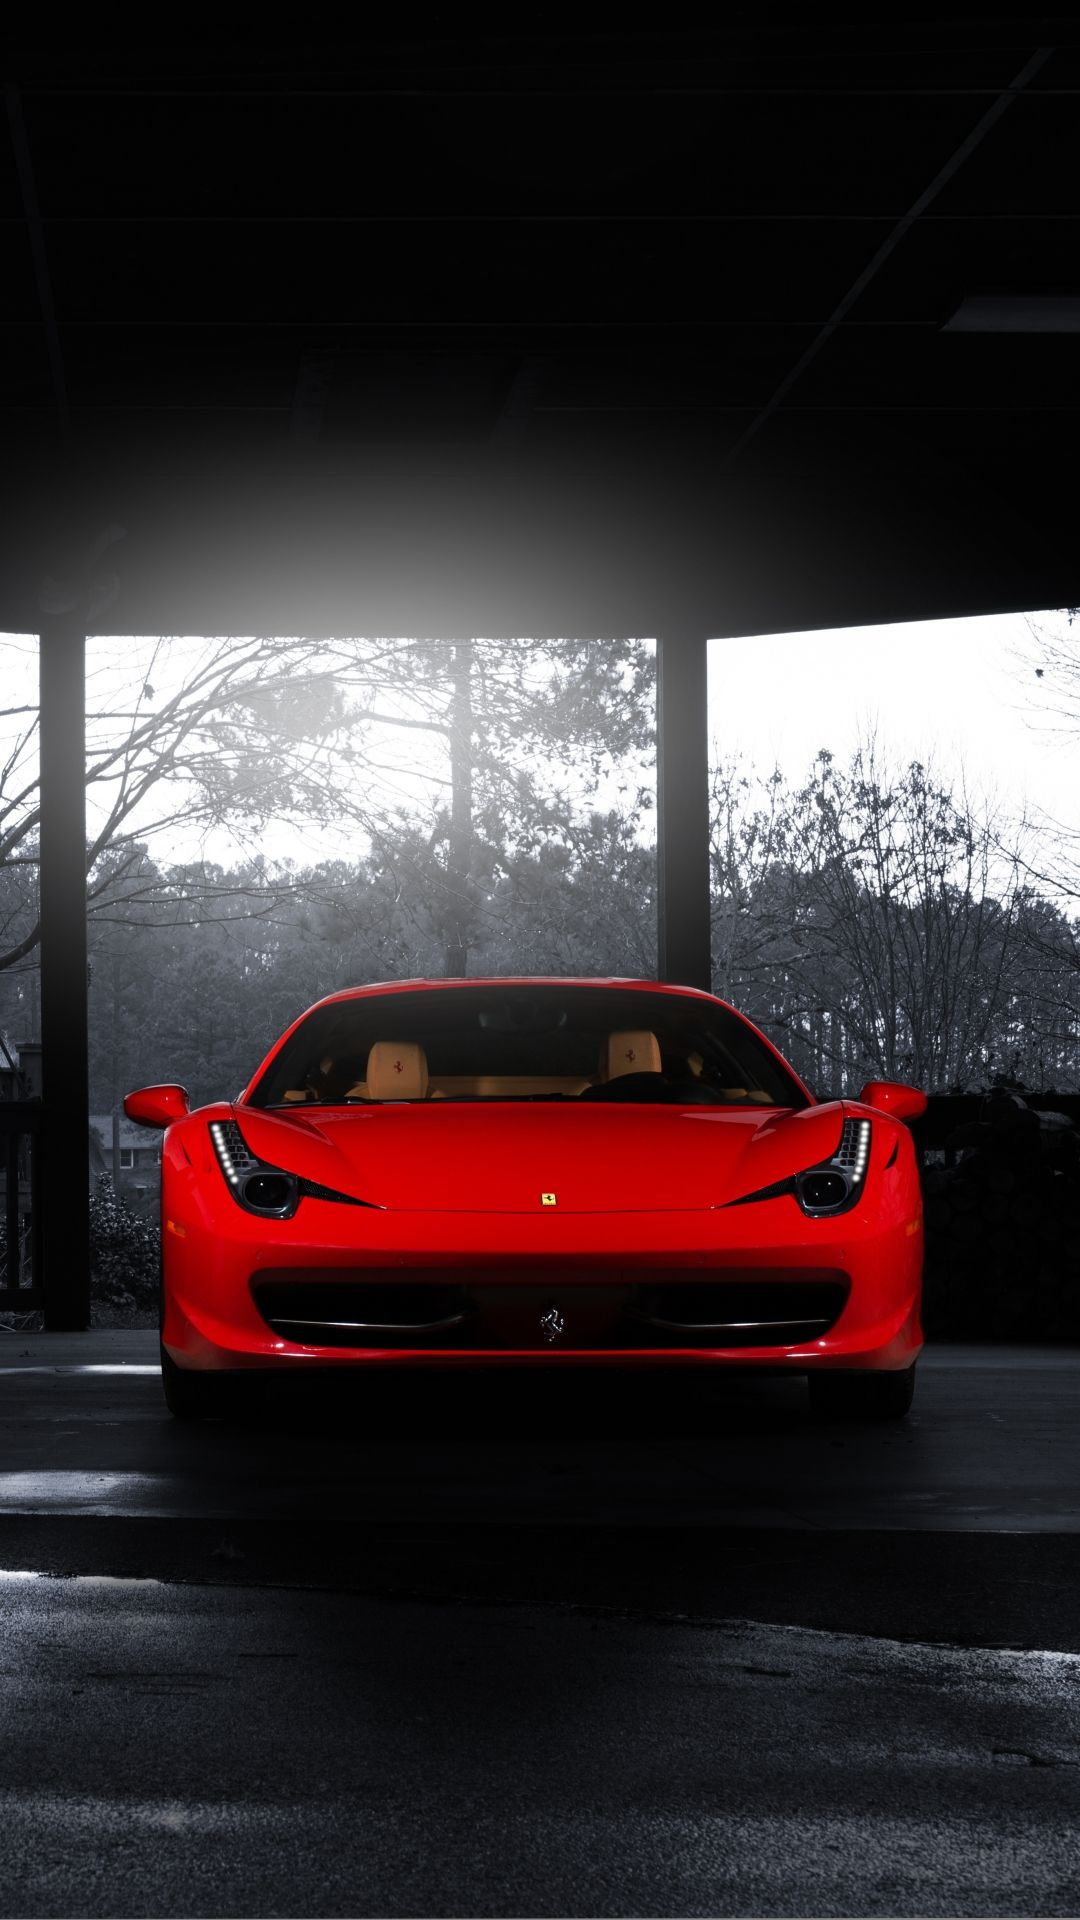 Ferrari Phone Wallpapers Top Free Ferrari Phone Backgrounds